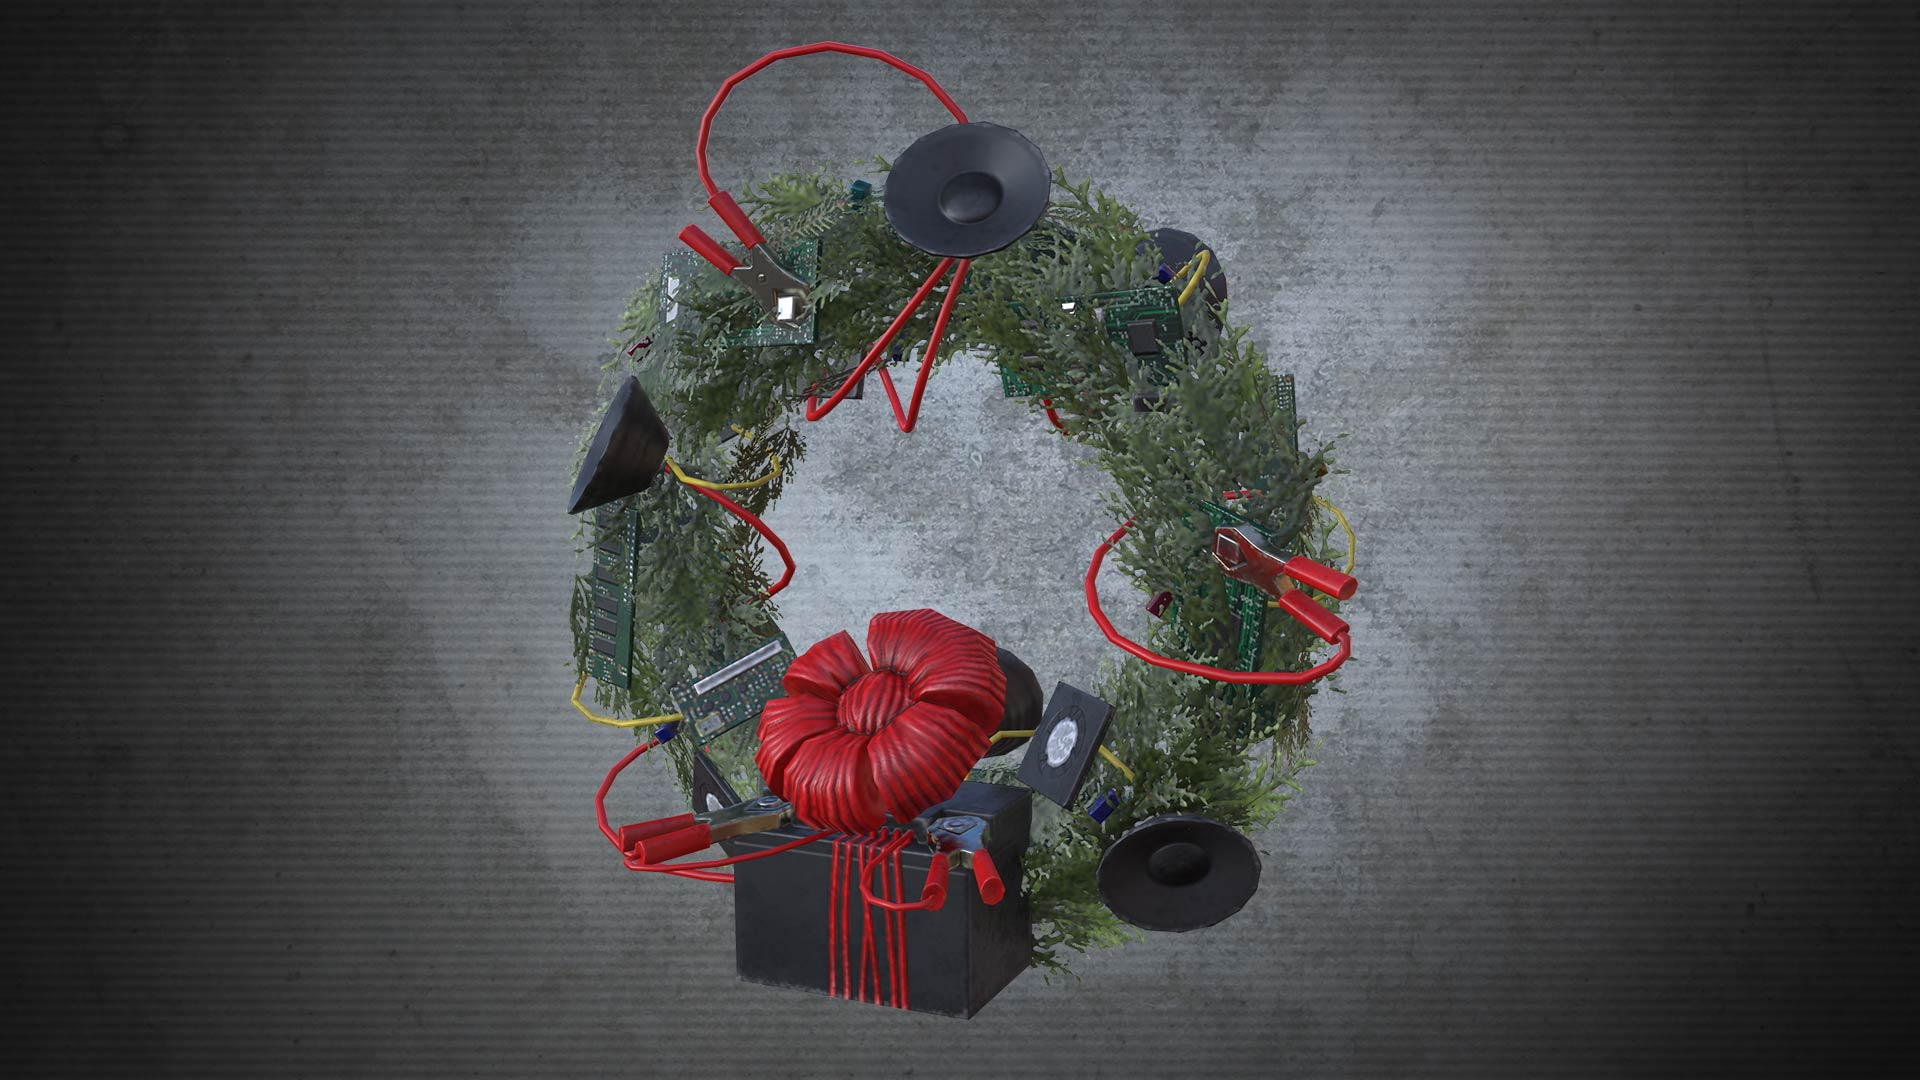 Arma electric wreath Dead Rising 4